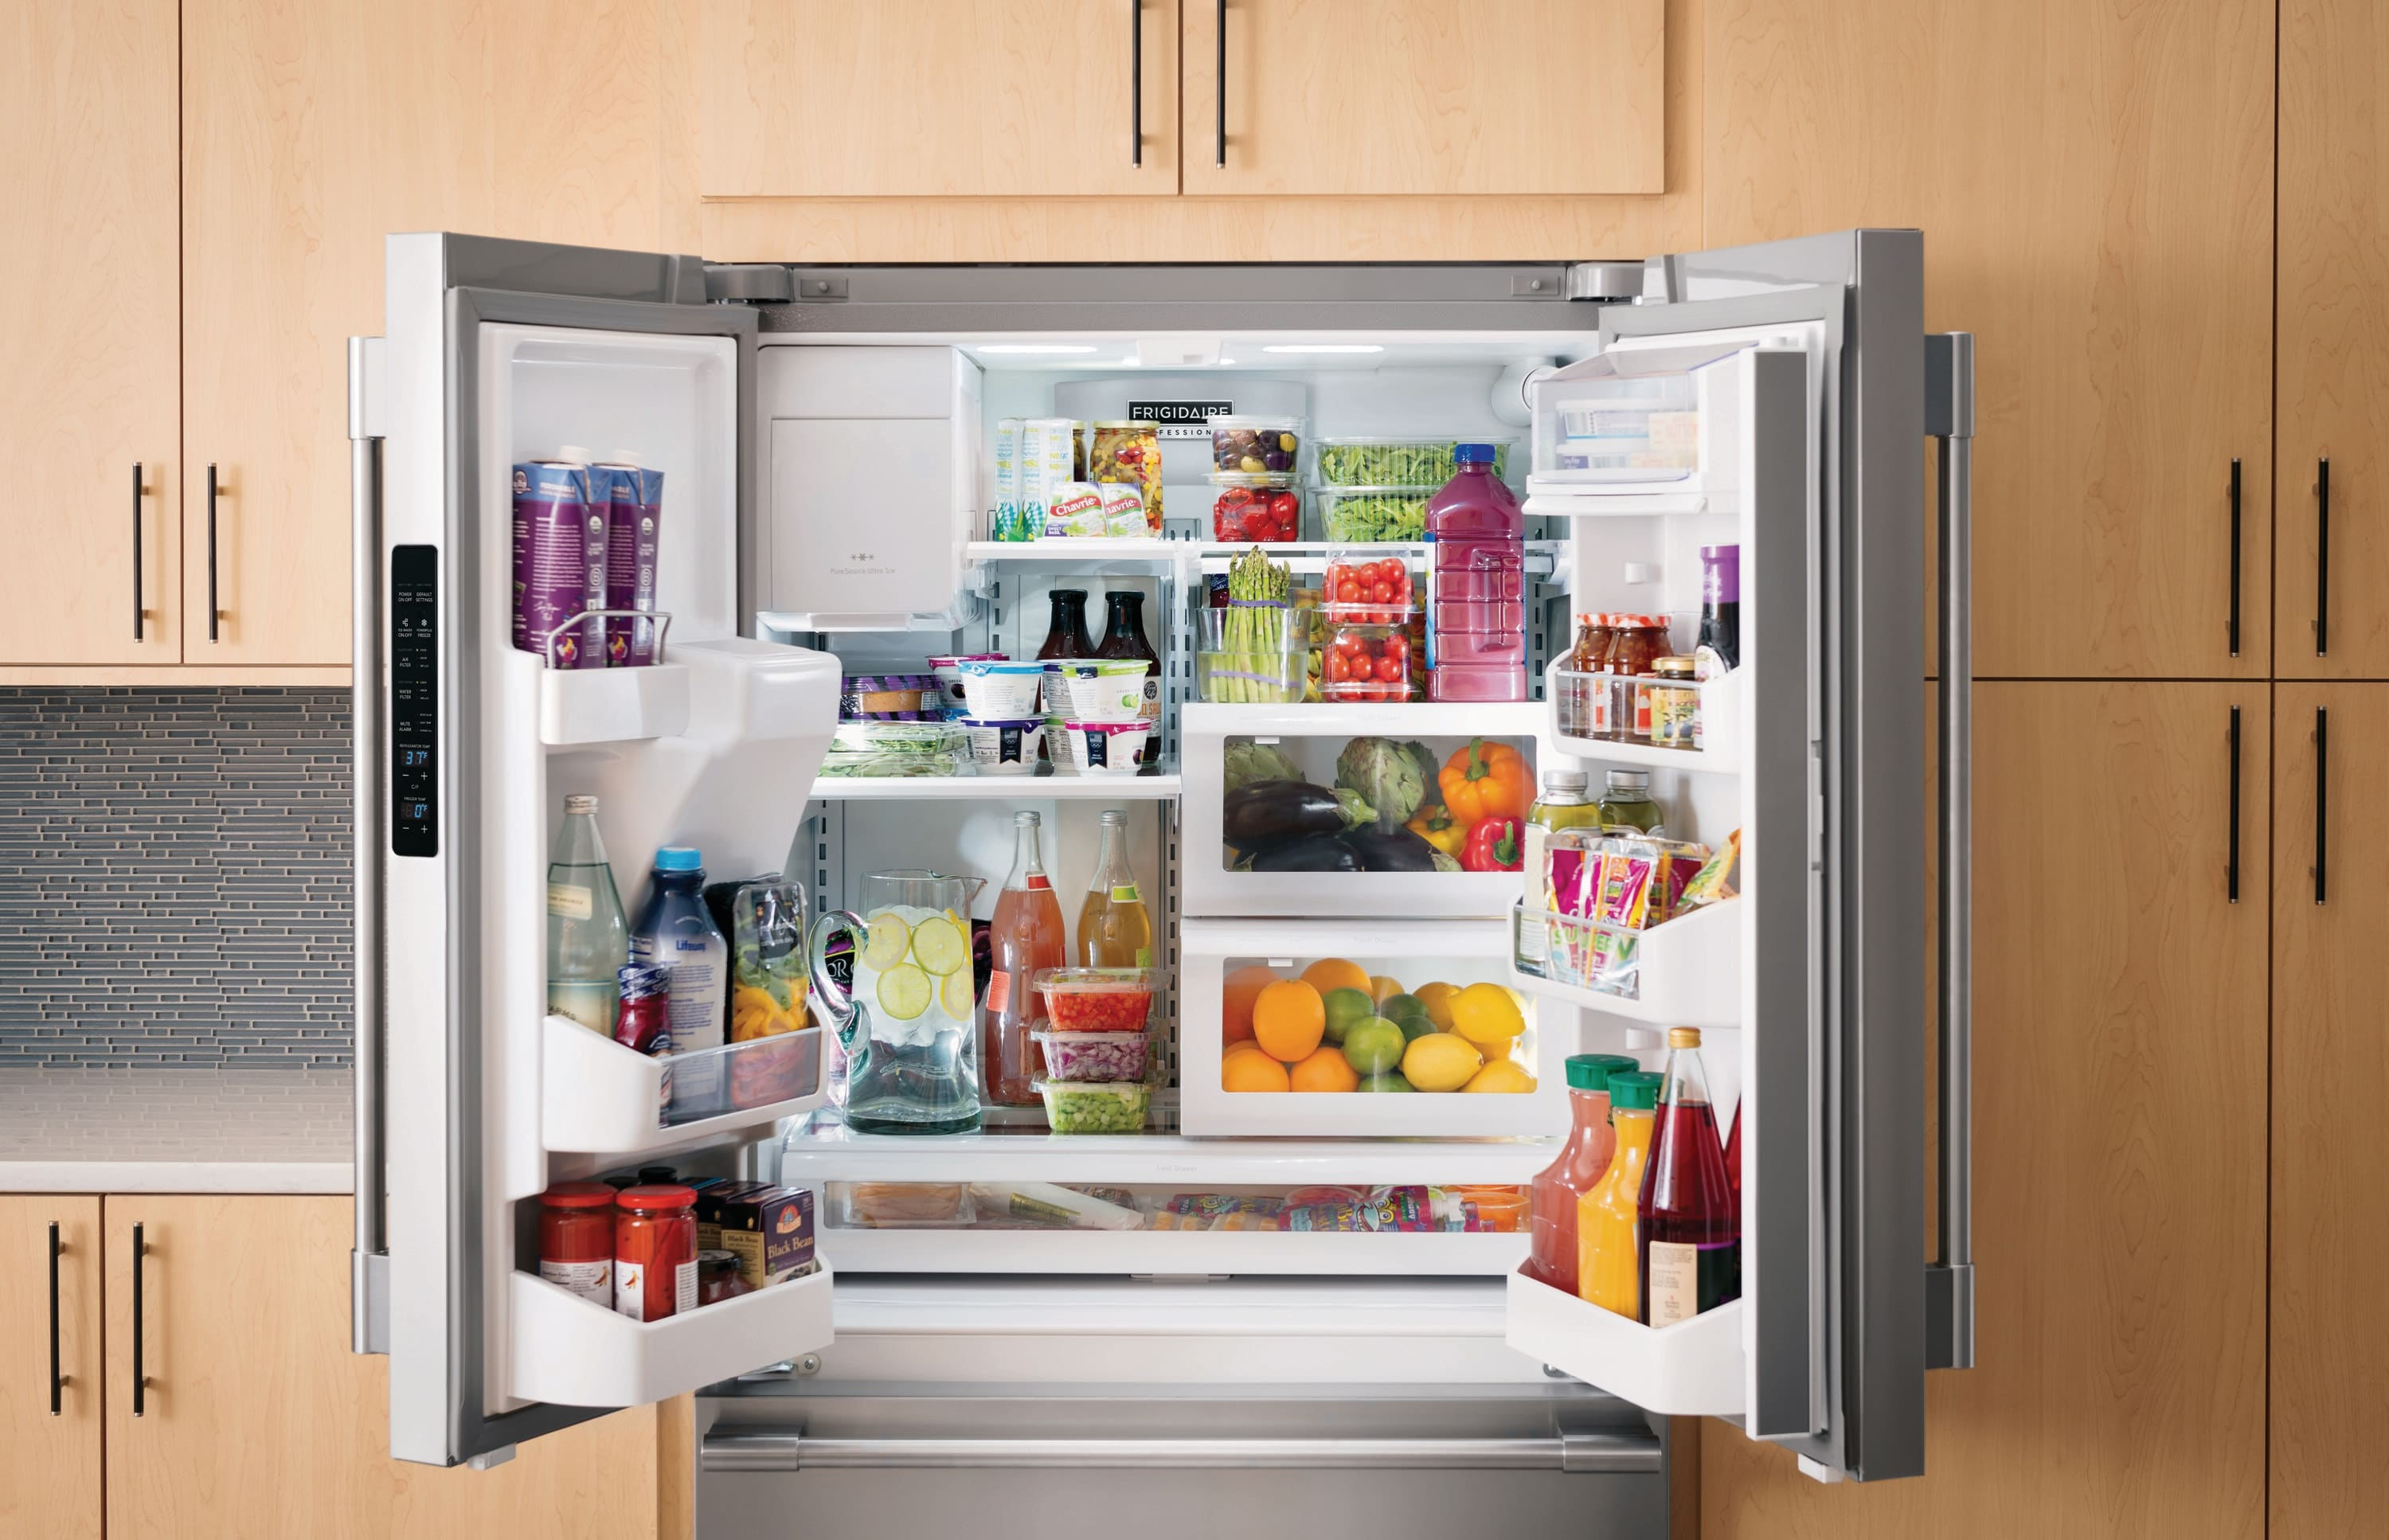 21.6 Cu. Ft. French Door Counter-Depth Refrigerator